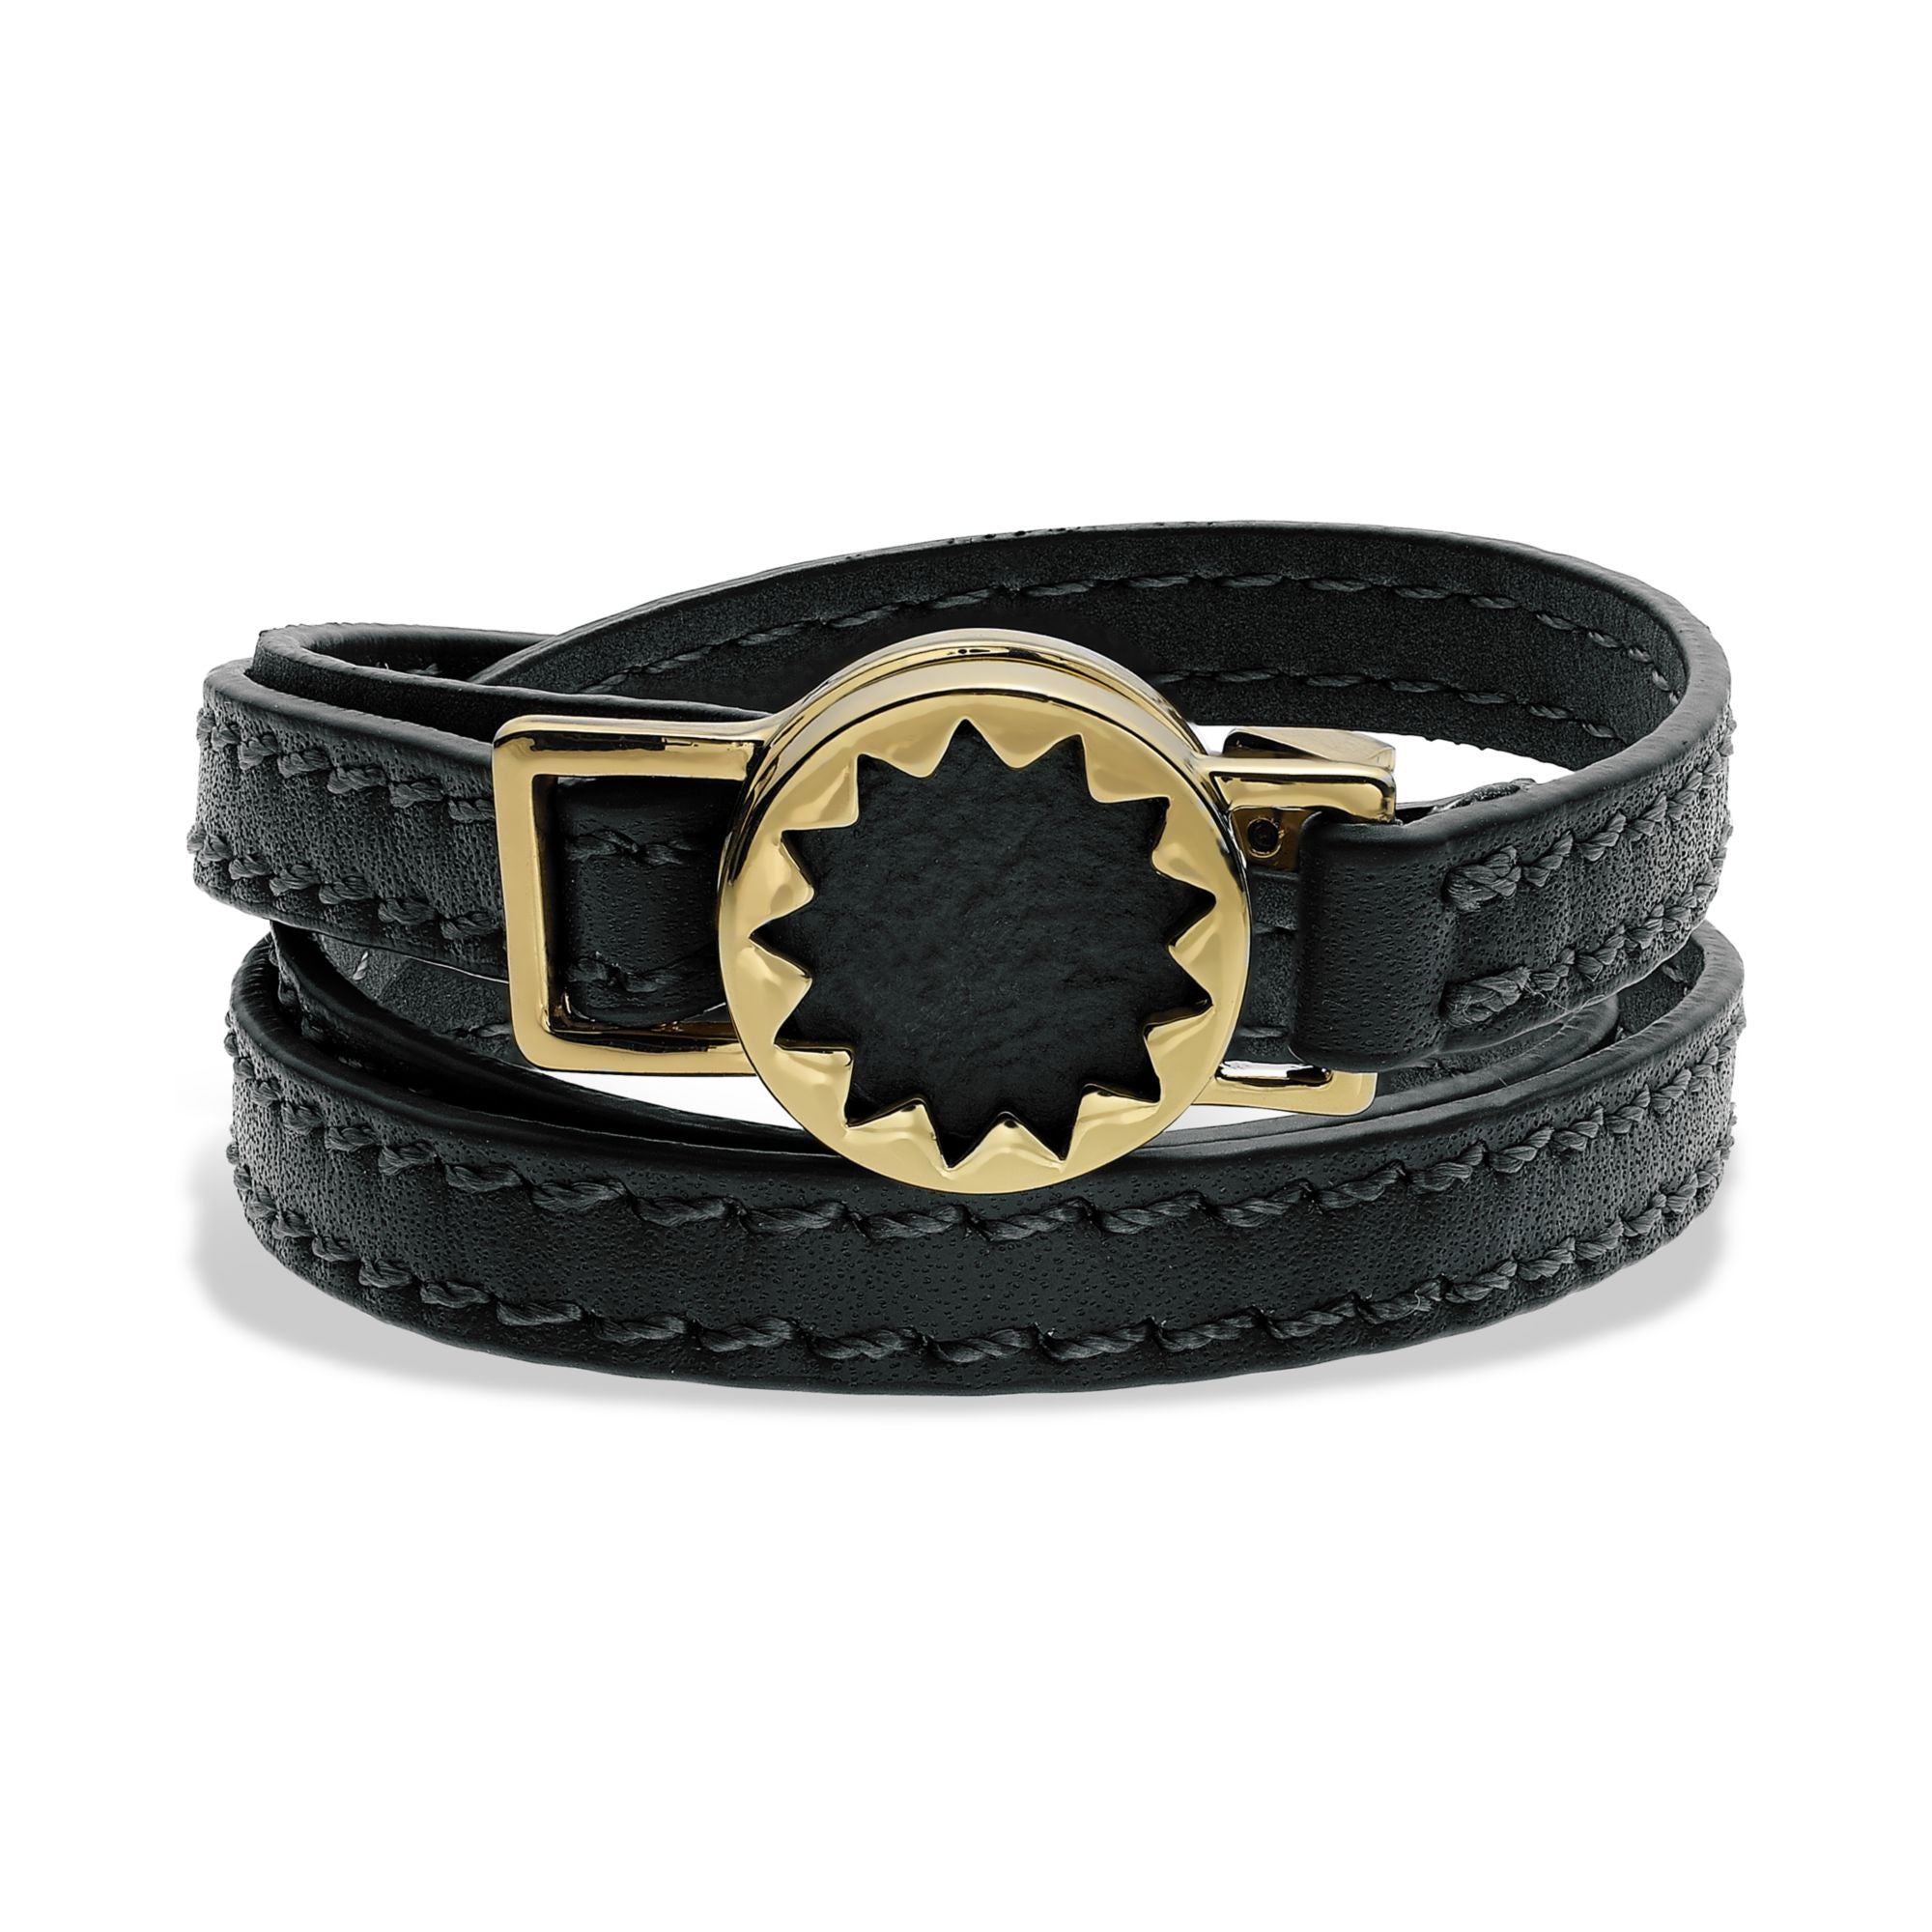 House of Harlow Gold tone Sunburst black wrap bracelet